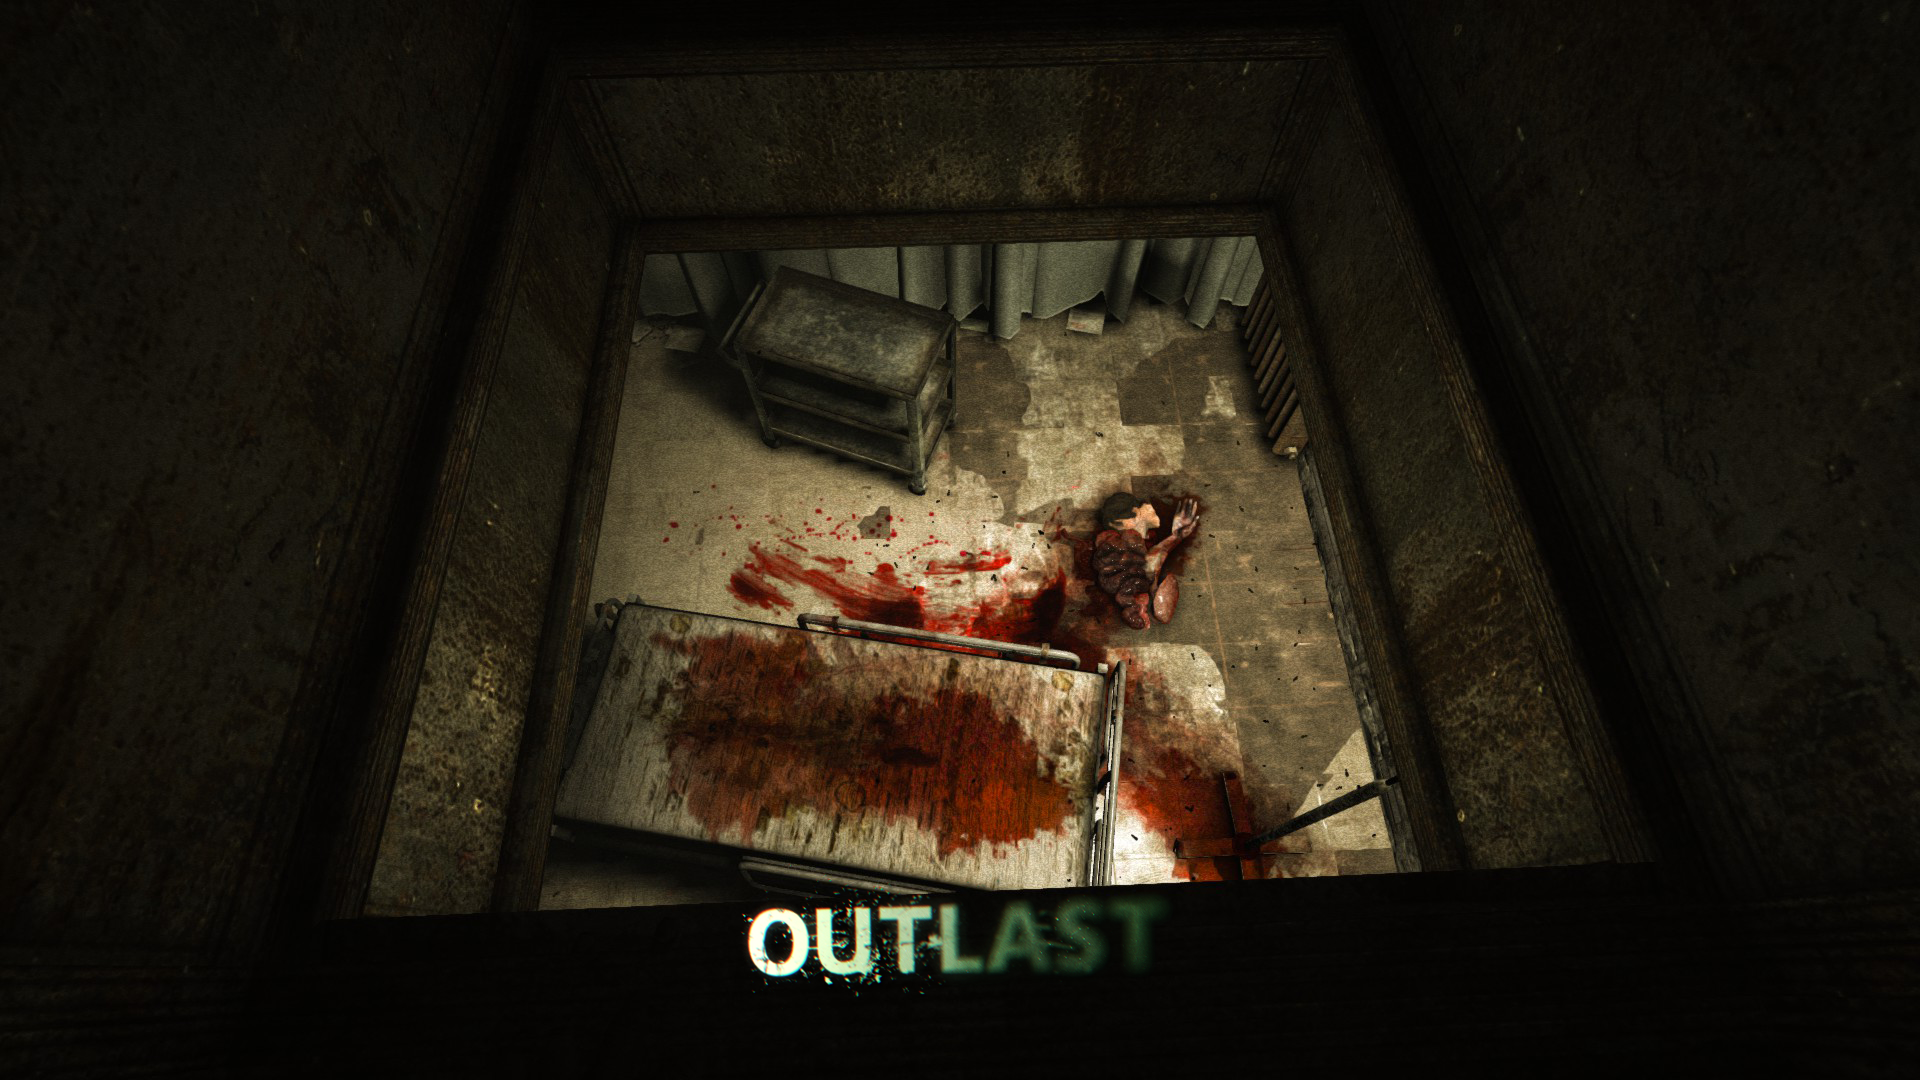 1920x1080 - Outlast HD Wallpapers 34